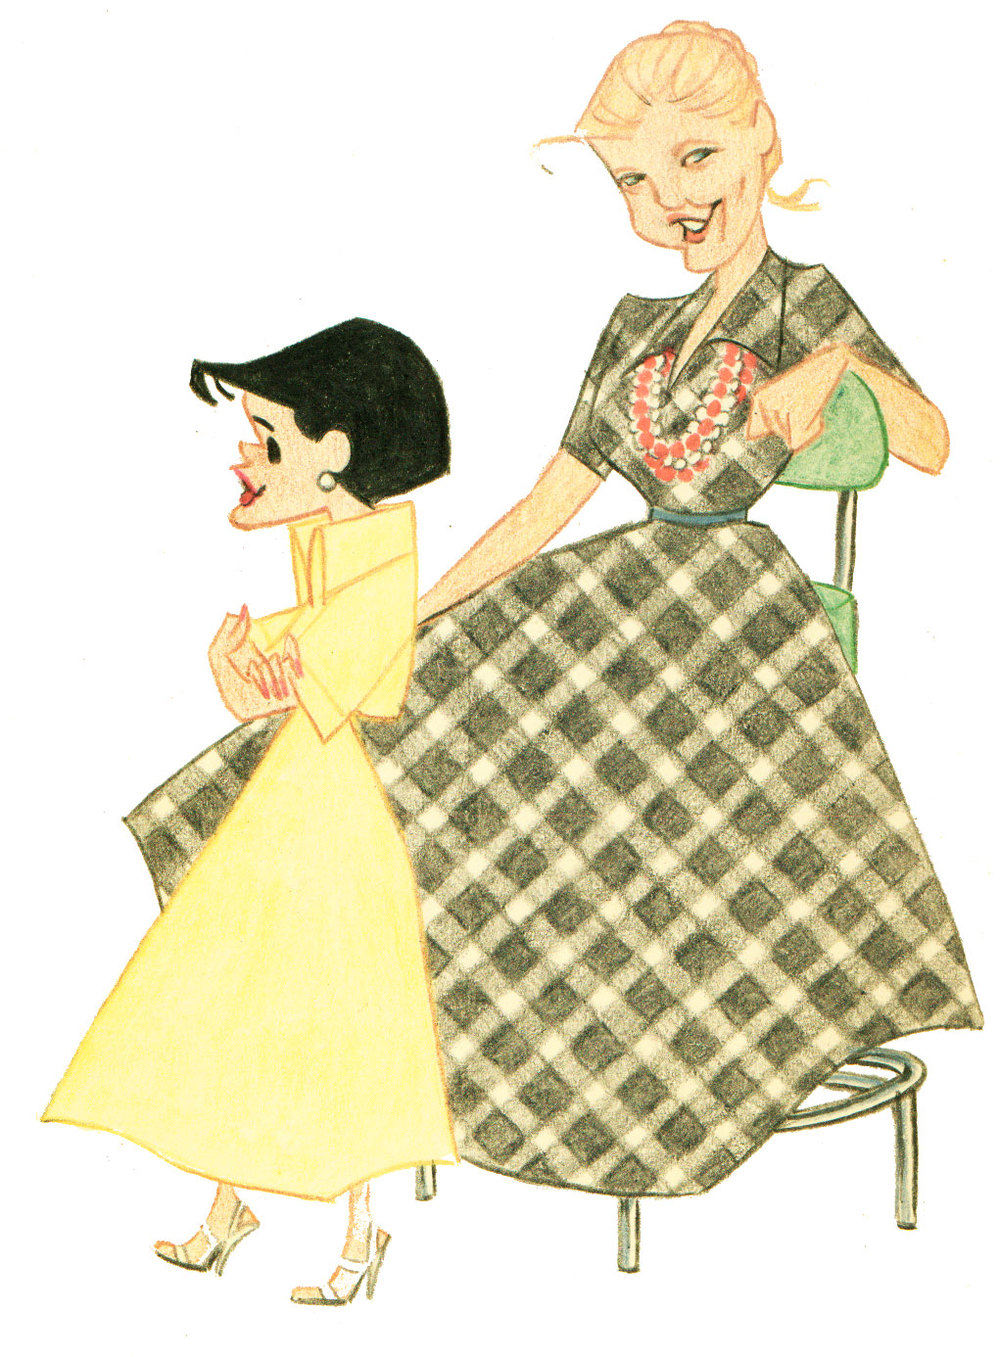 This wonderful drawing of Bea Tomargo and Elizabeth Case was created by animator, John Sparey. John often sketched the Disney artists back in the fifties. His drawings are remarkable and spot on.